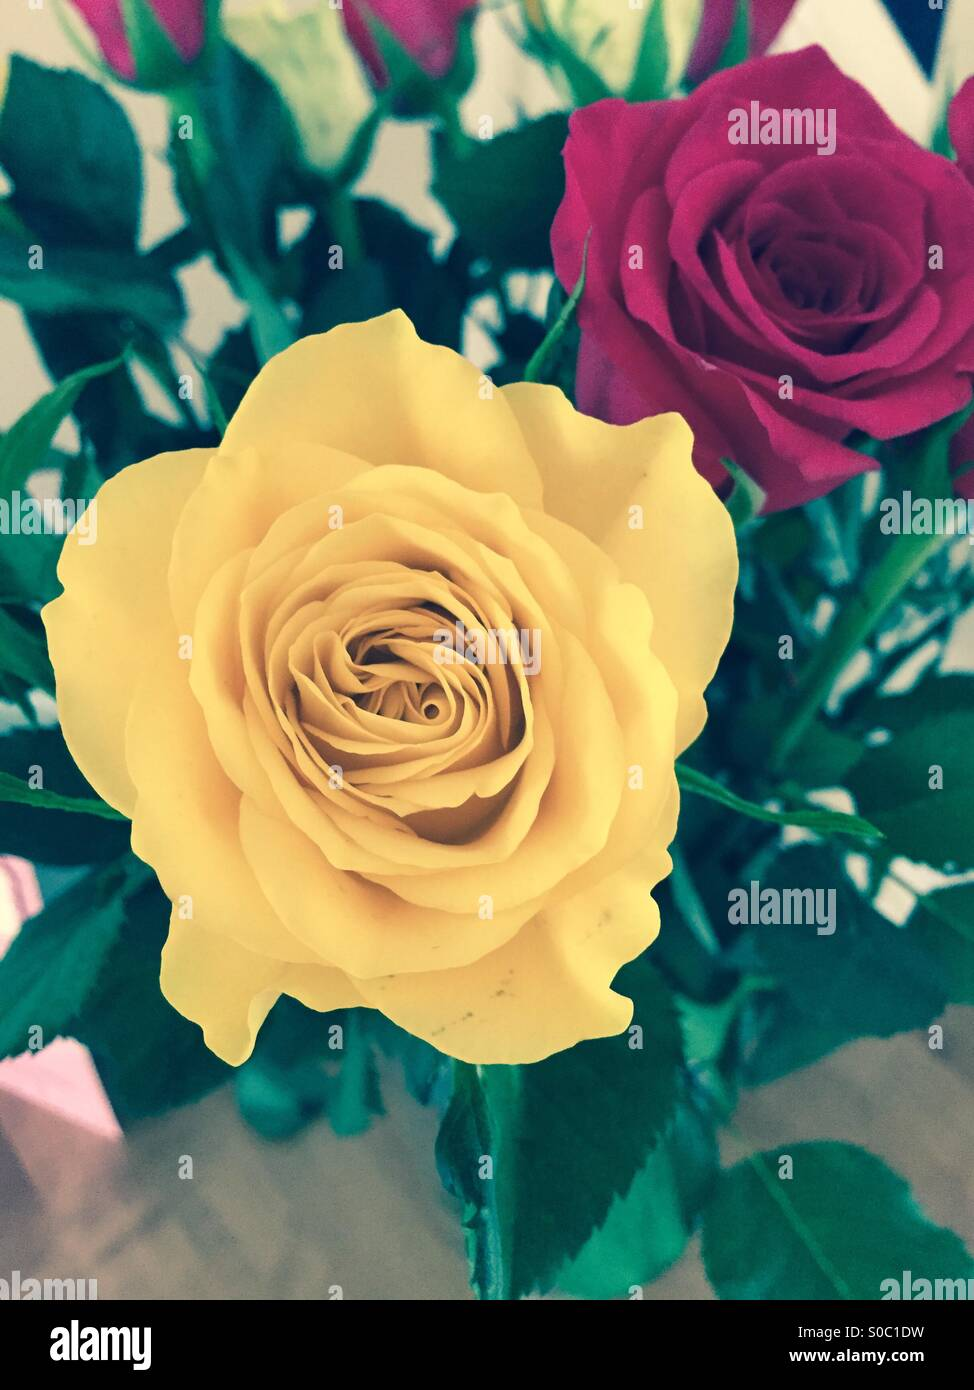 Yellow And Pink Rose Flowers Of Love And Friendship Stock Photo